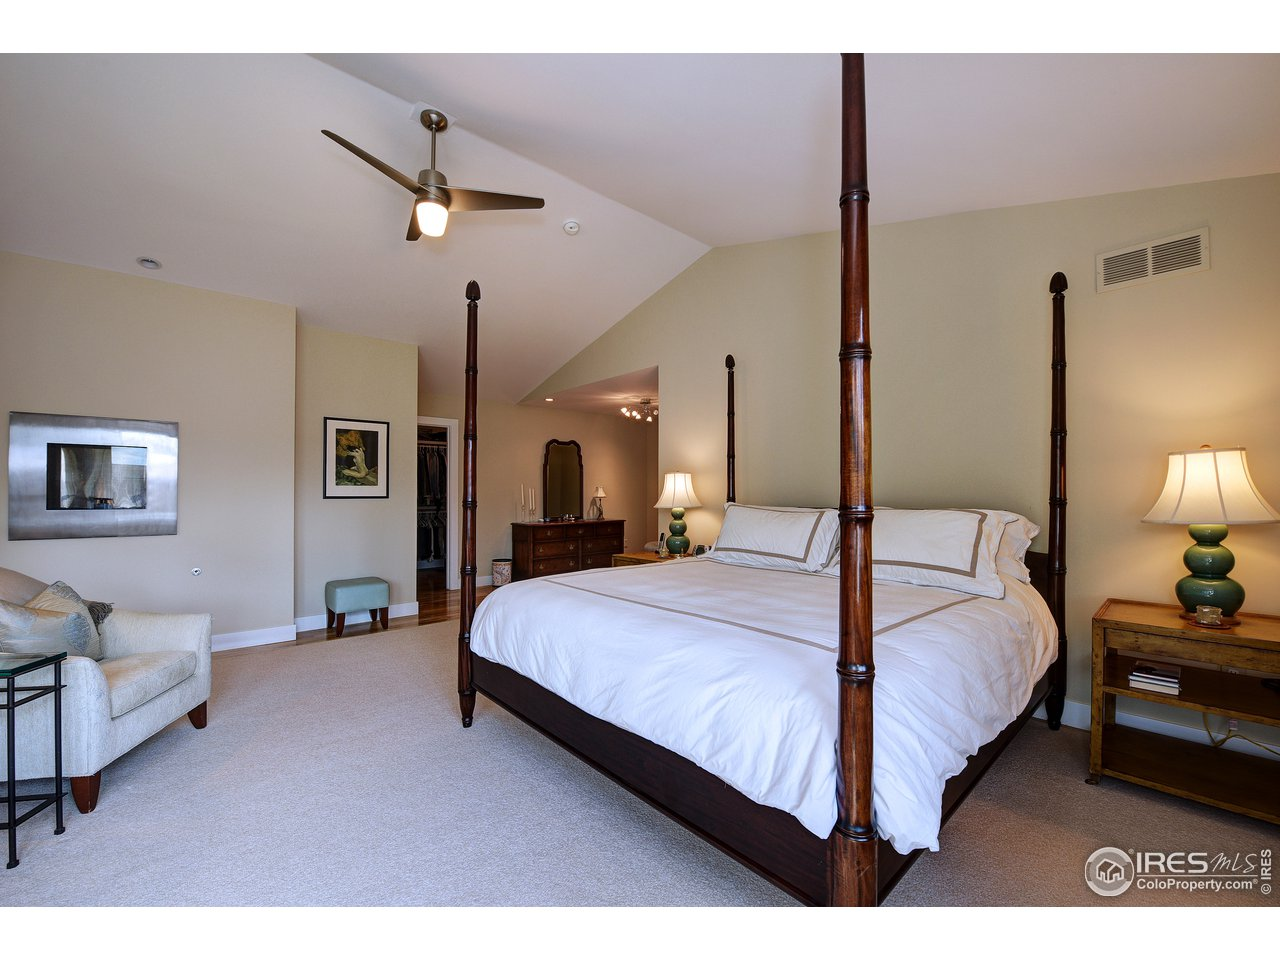 Vaulted ceilings, wood floors unter rug